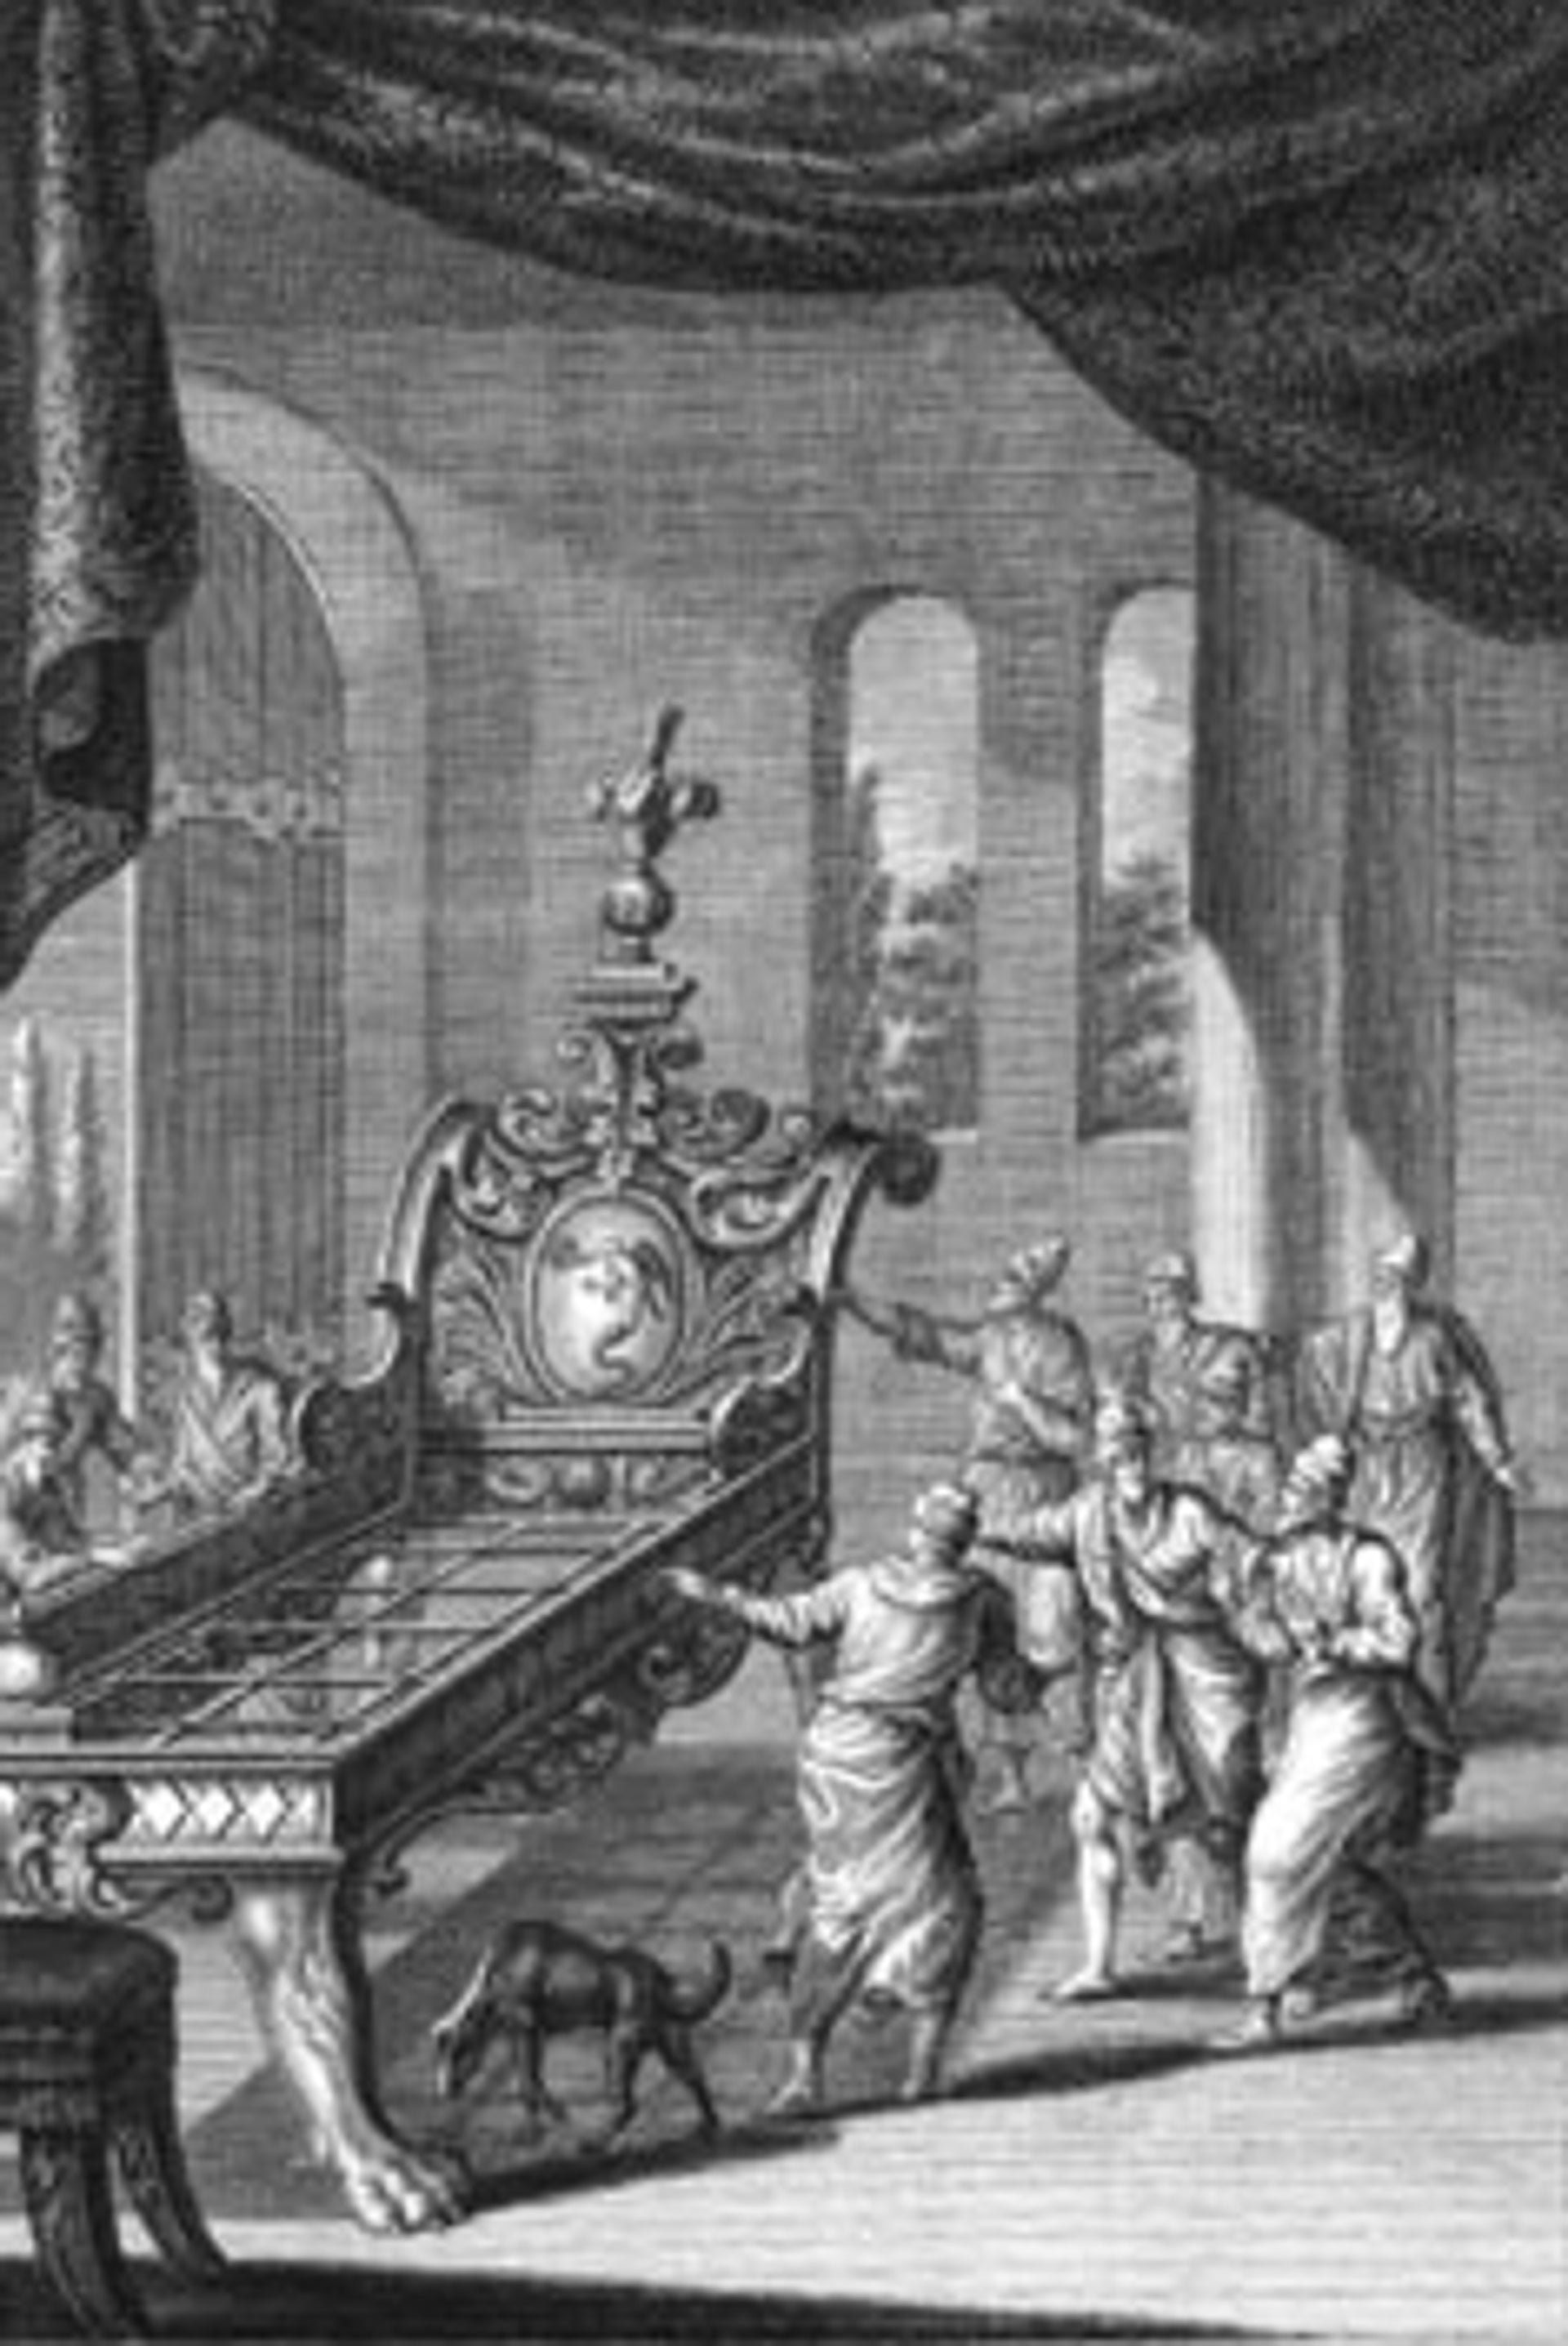 Bed of Og, King of Bashan, an Amorite. (engraving circa 1770 by Johann Balthasar Probst)